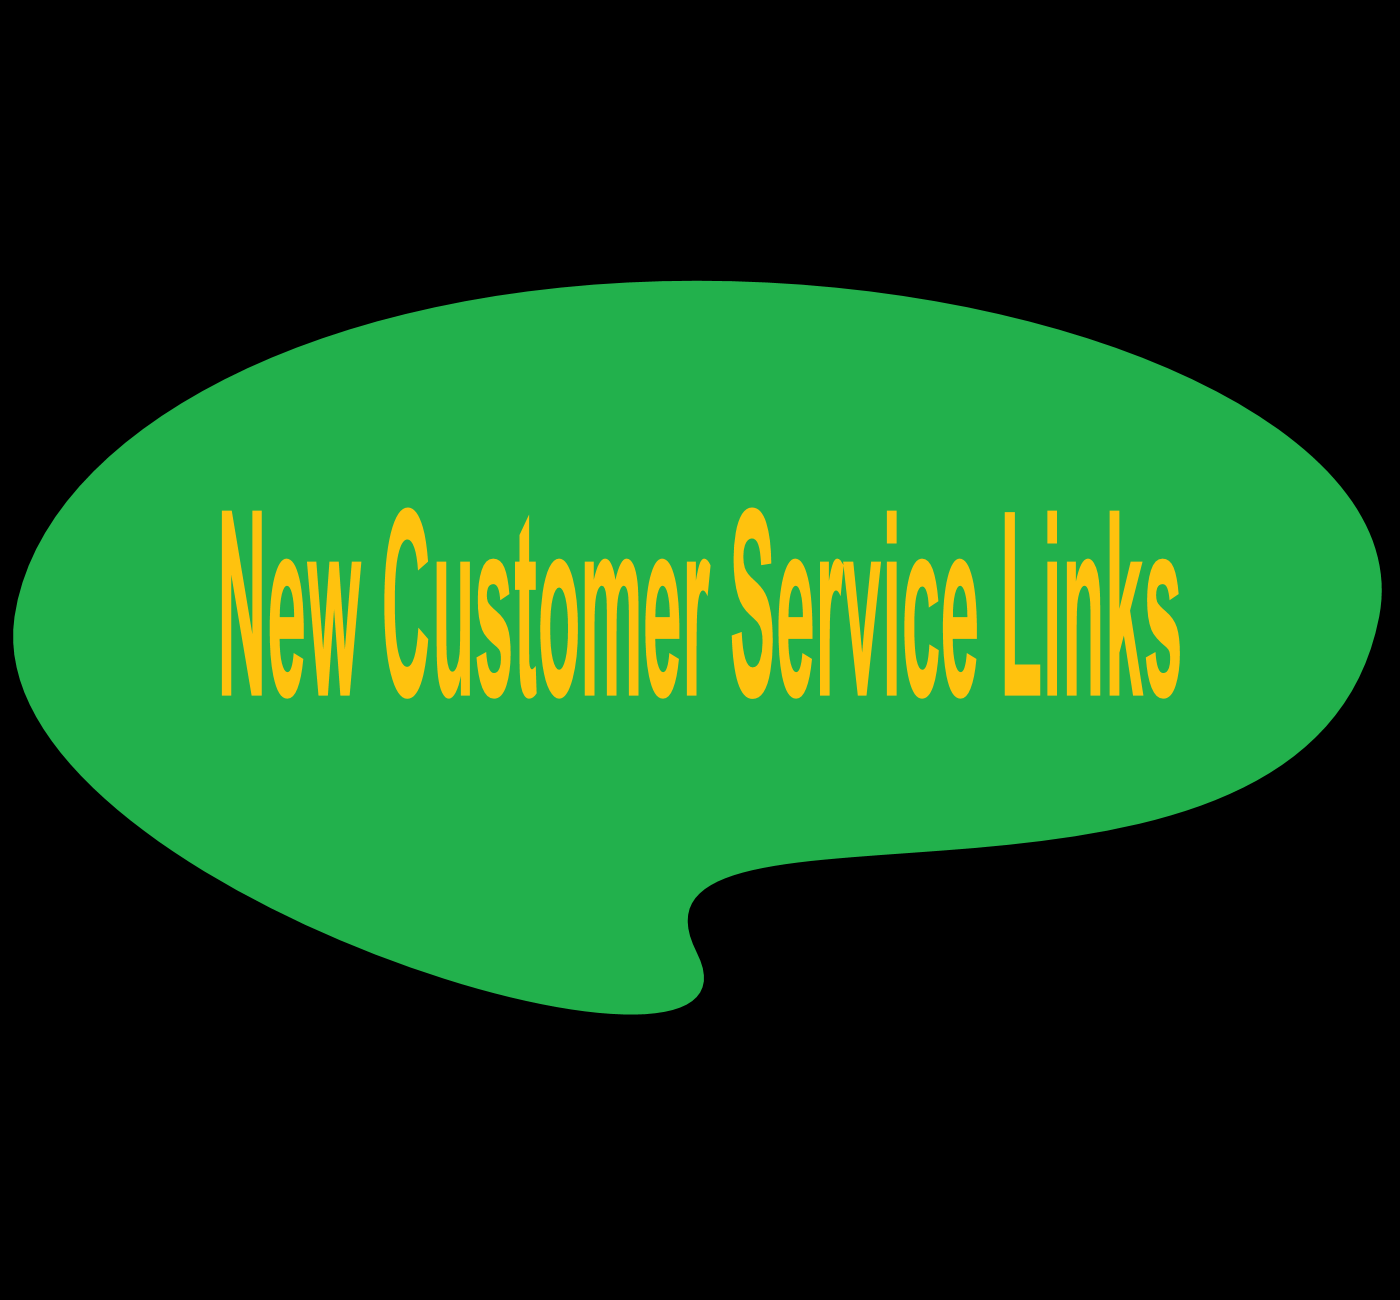 New Customer Service Links